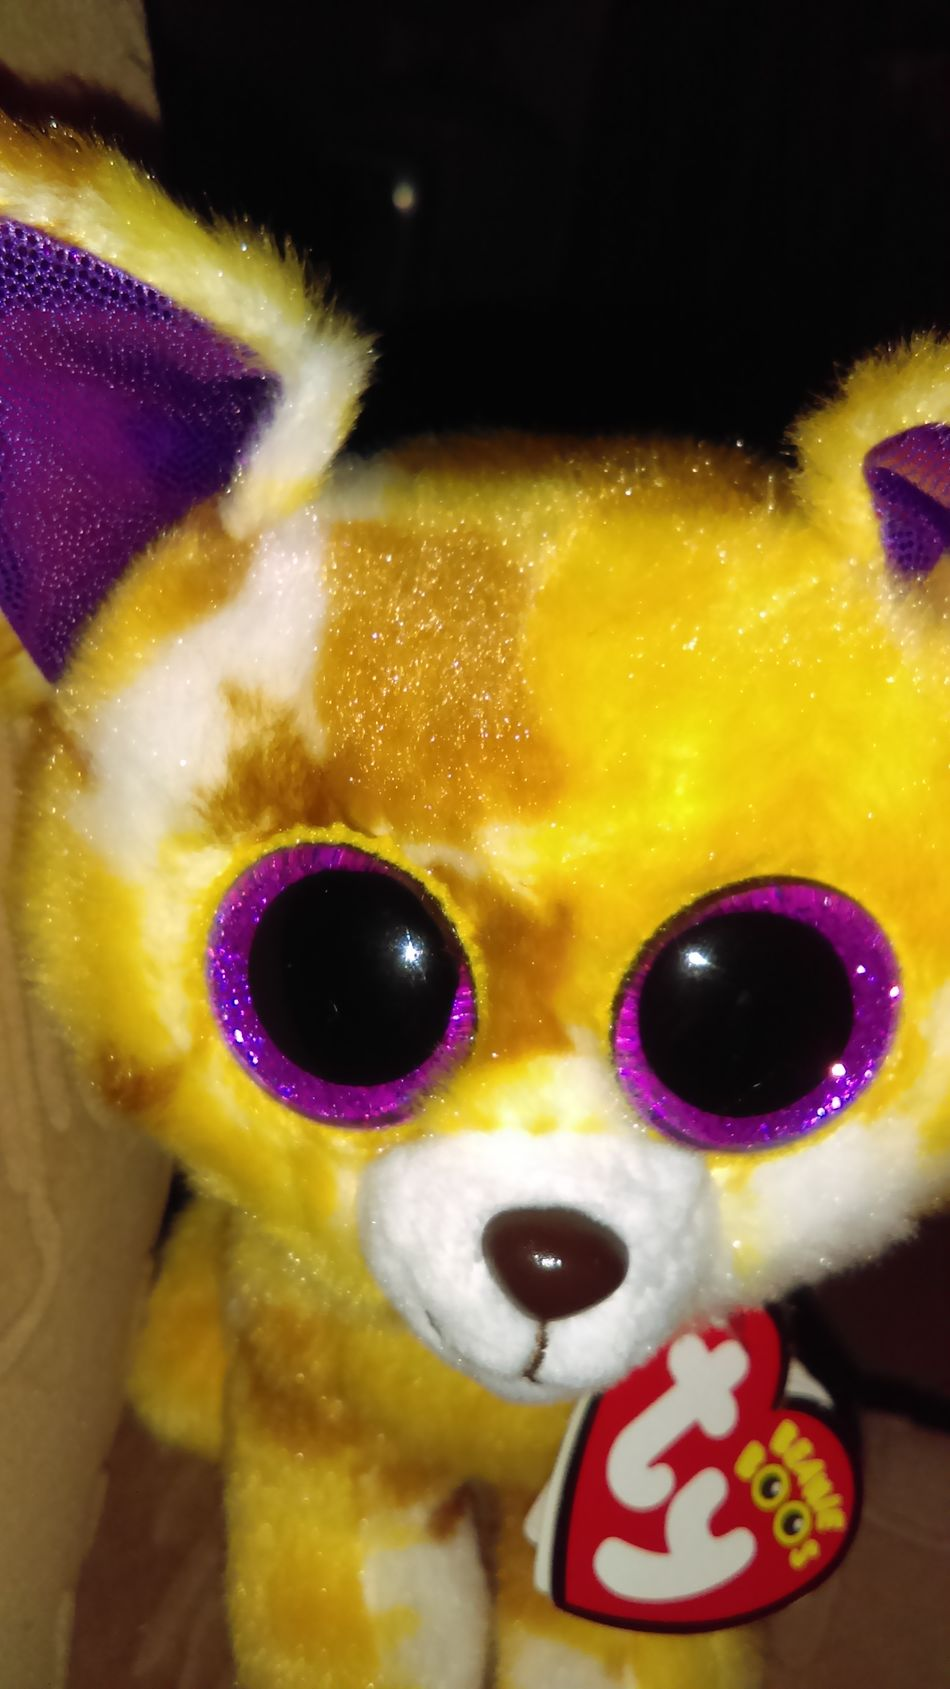 Pablo Creepy Sparkly Piercing Eyes Plushies Puppy Eyes Cute 90's  Bdaygift Friends